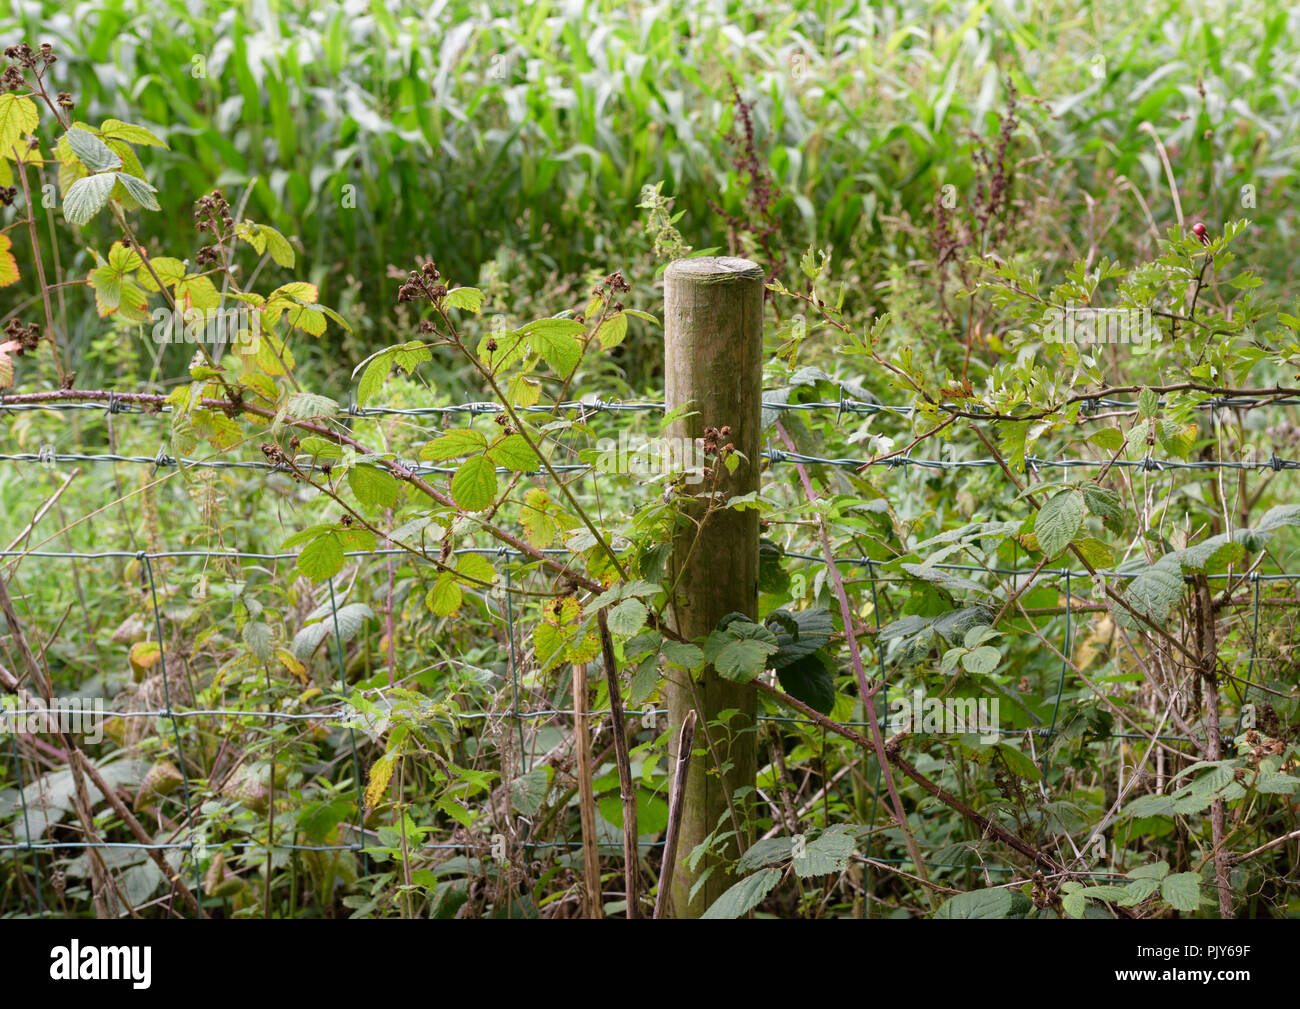 Wooden Fence post and barb wire fence in front of maize crop - Stock Image